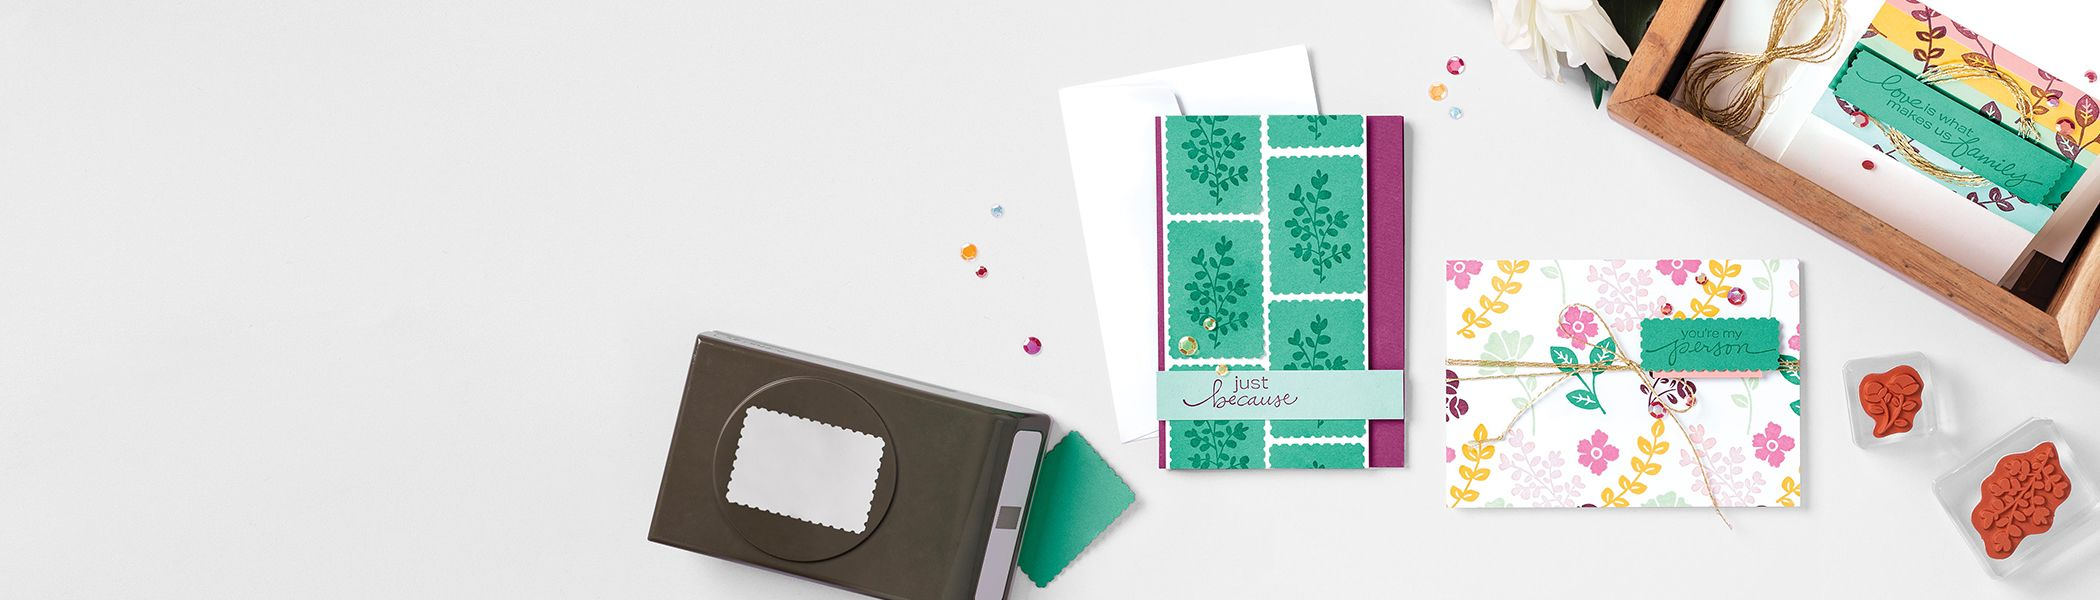 The Posted for You Bundle products with card samples